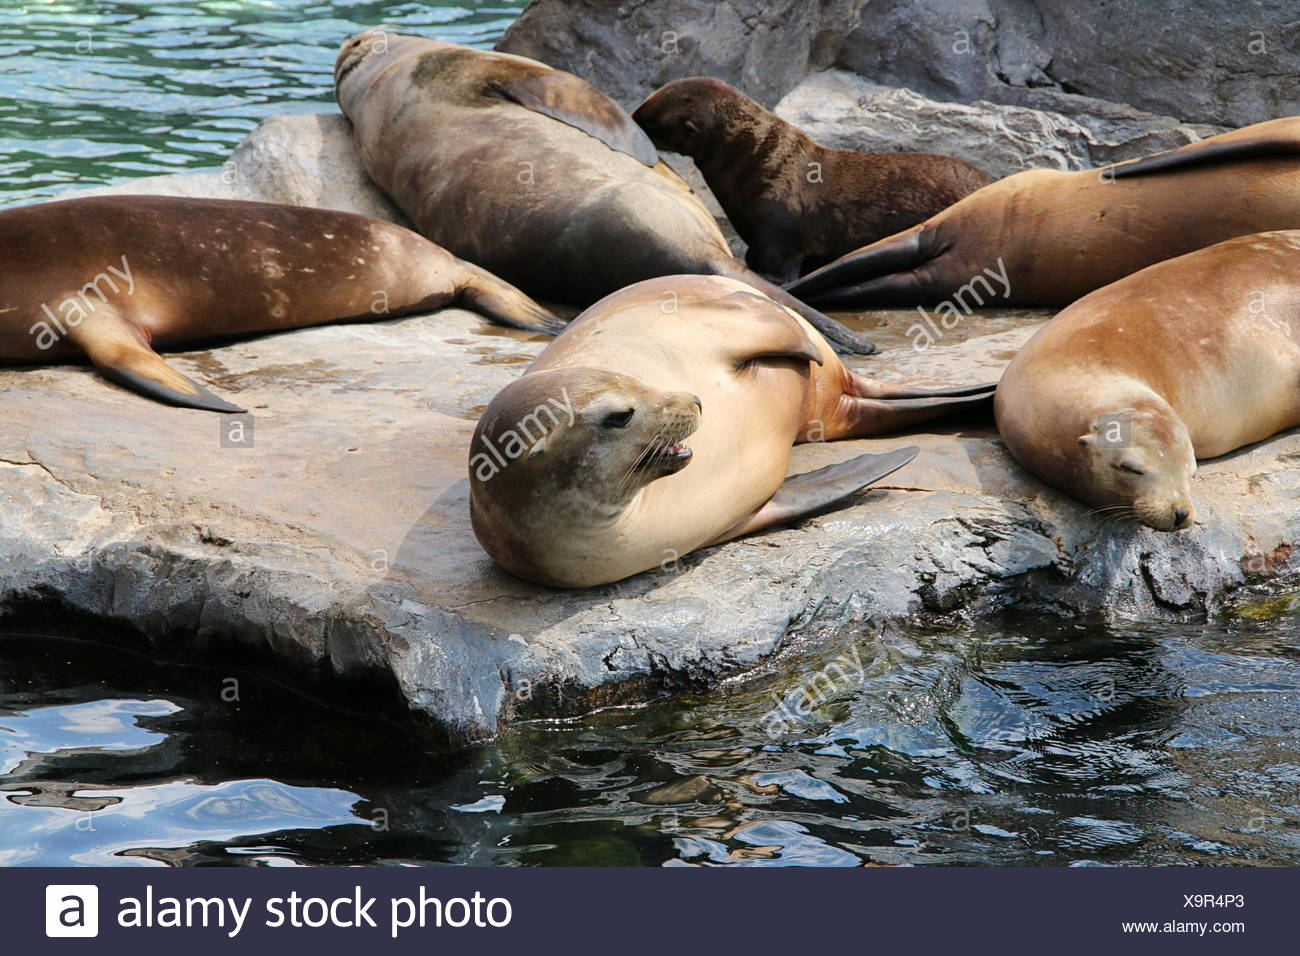 mammal conservation of nature Stock Photo